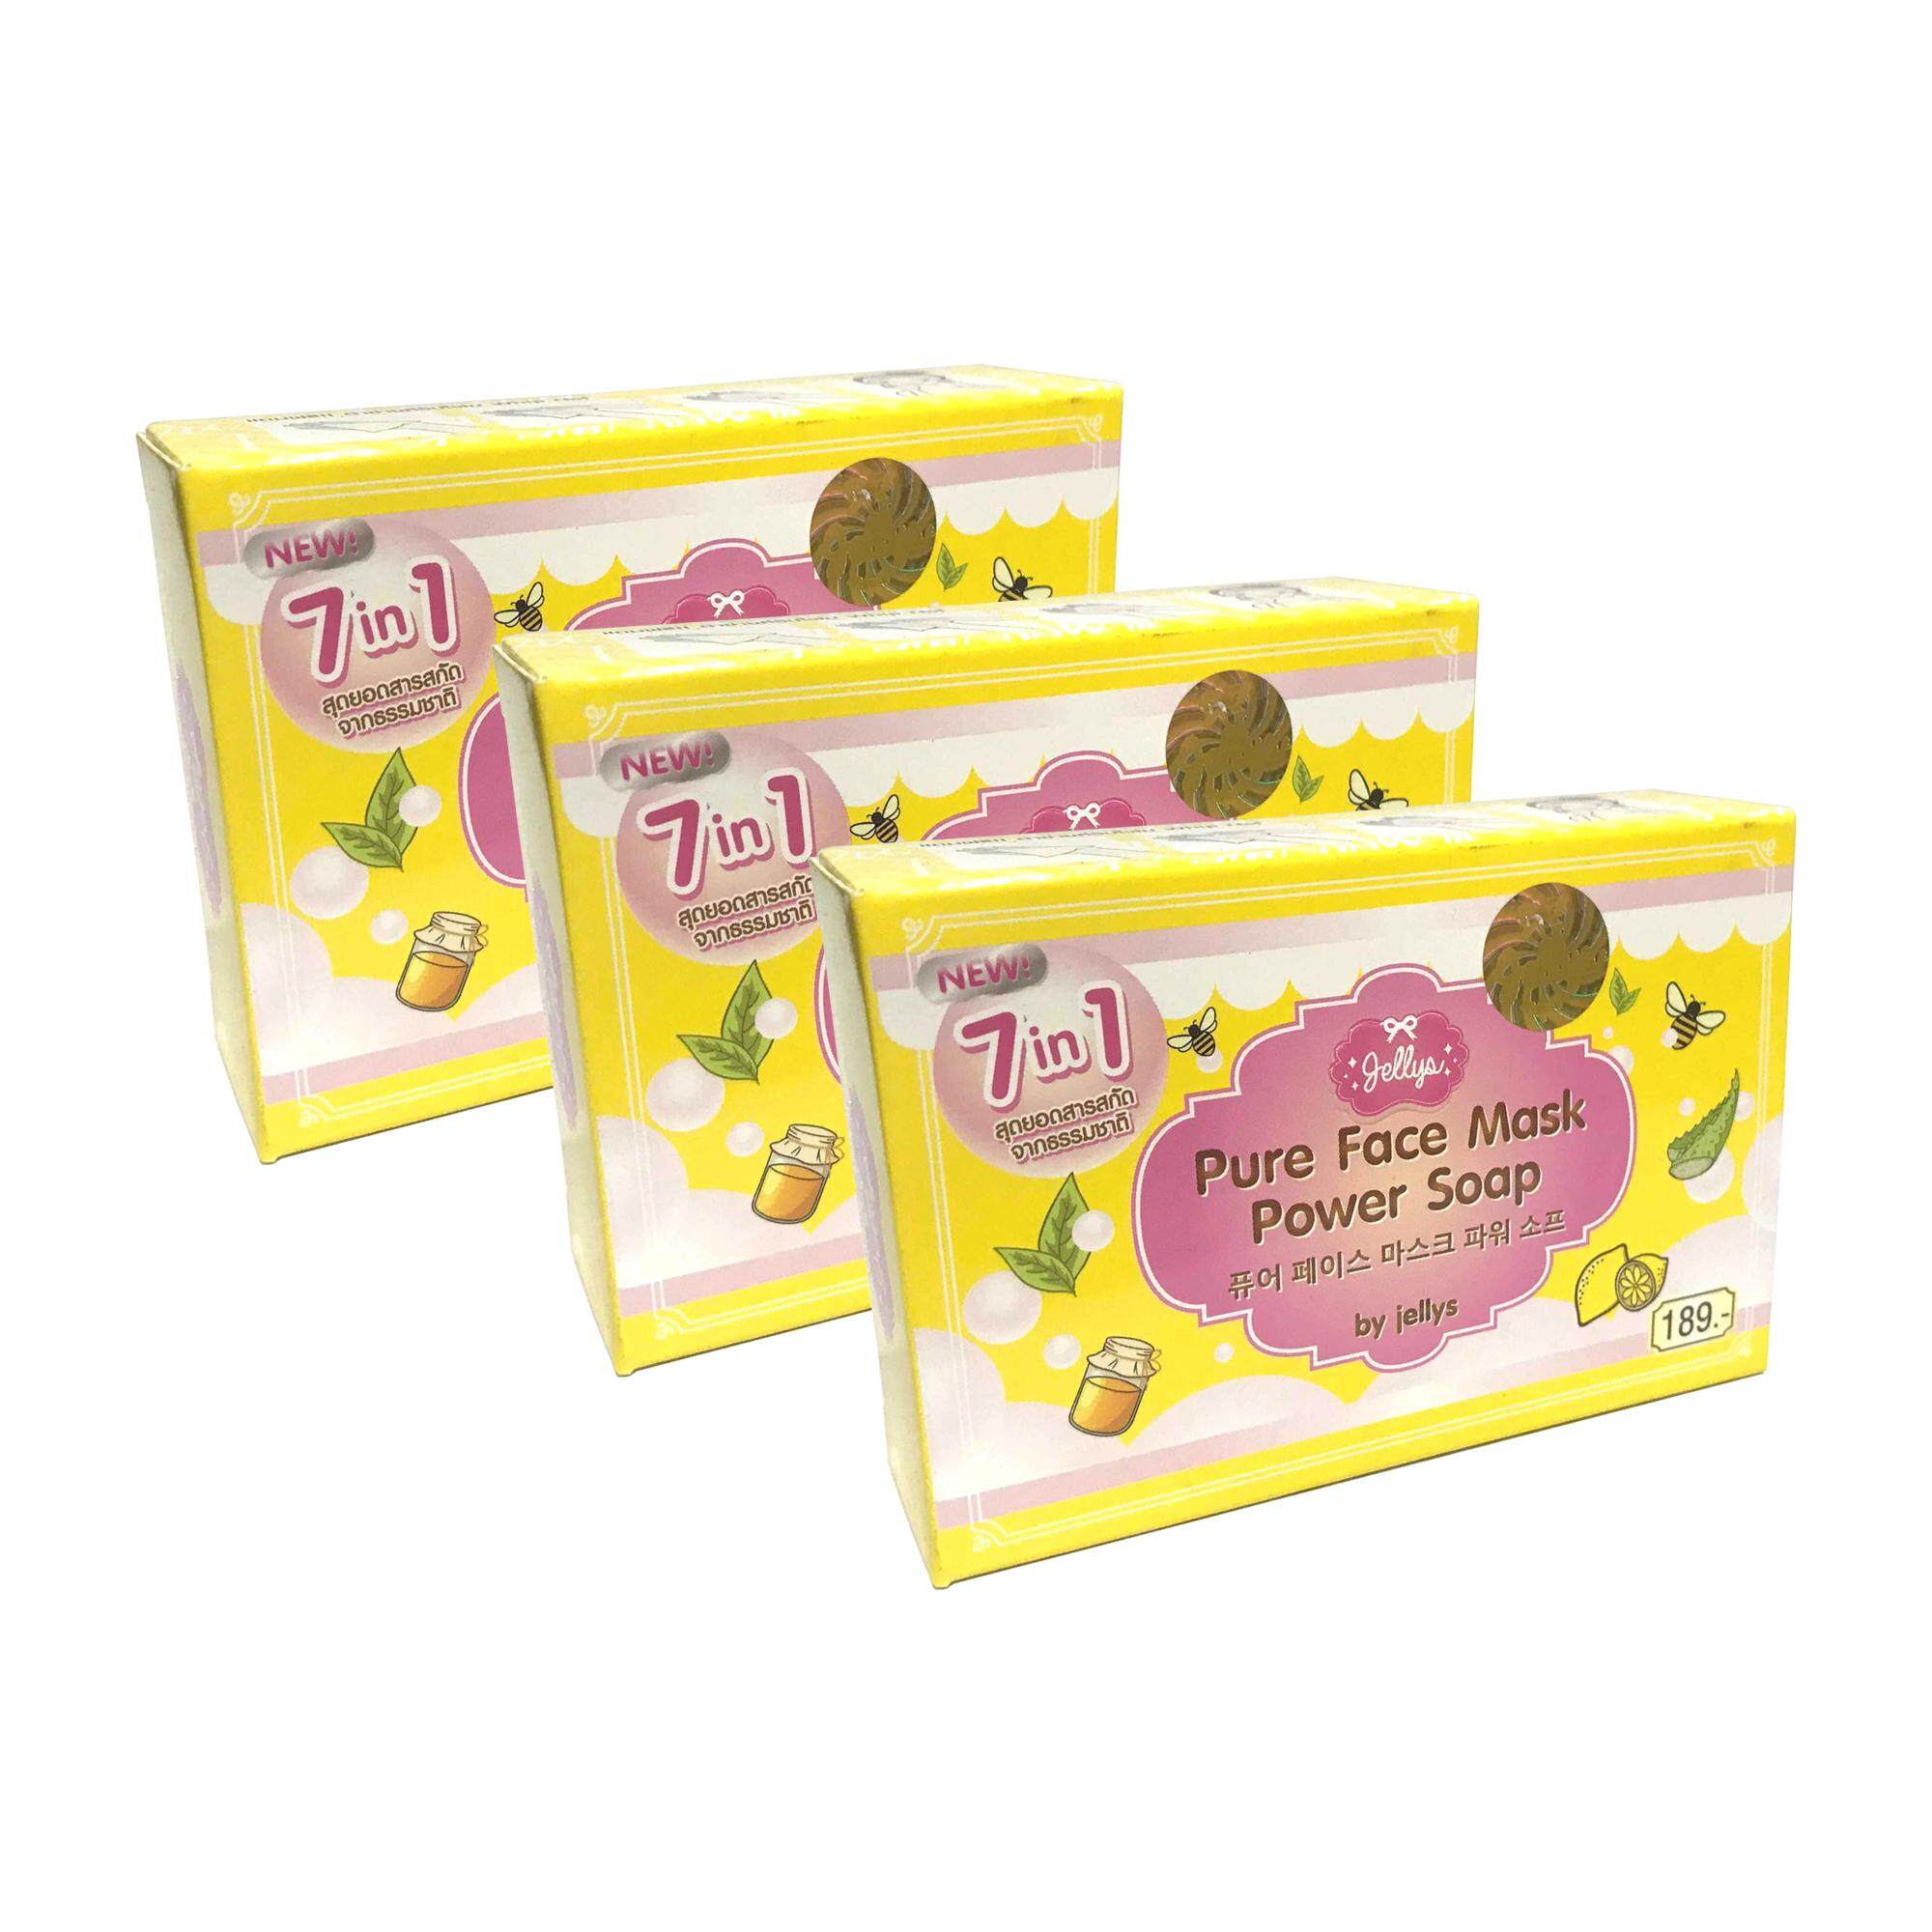 Sell Pure Face Mask Cheapest Best Quality Th Store Jellys Power Soap Thb 300